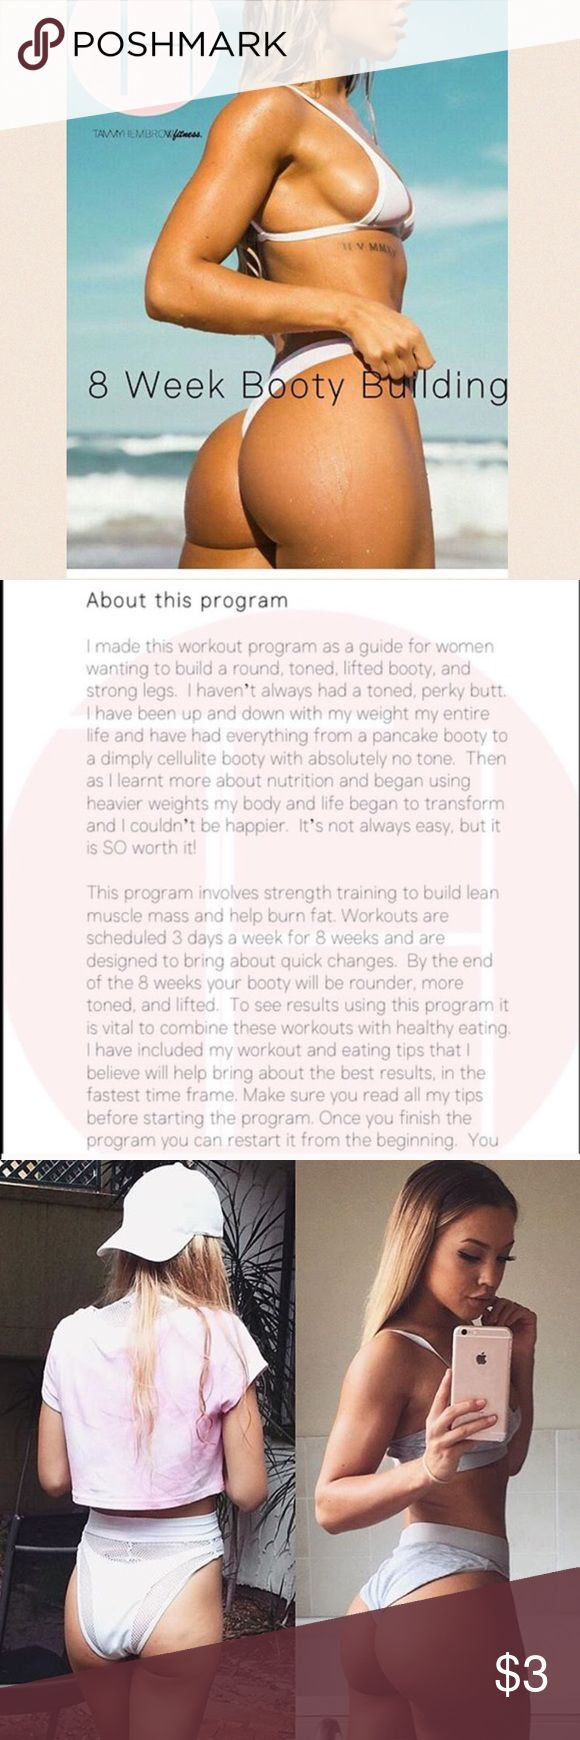 Tammy Hembrow 8 Week Booty Workout READ BEFORE PURCHASING. Pay through ️️ f&f not through here or I will issue refund. 8 week booty building workout. Very effective. You can send the $3 payment through PayPal friends & family (vdenham02@gmail.com). Then just comment payment sent and I will email the link. Other